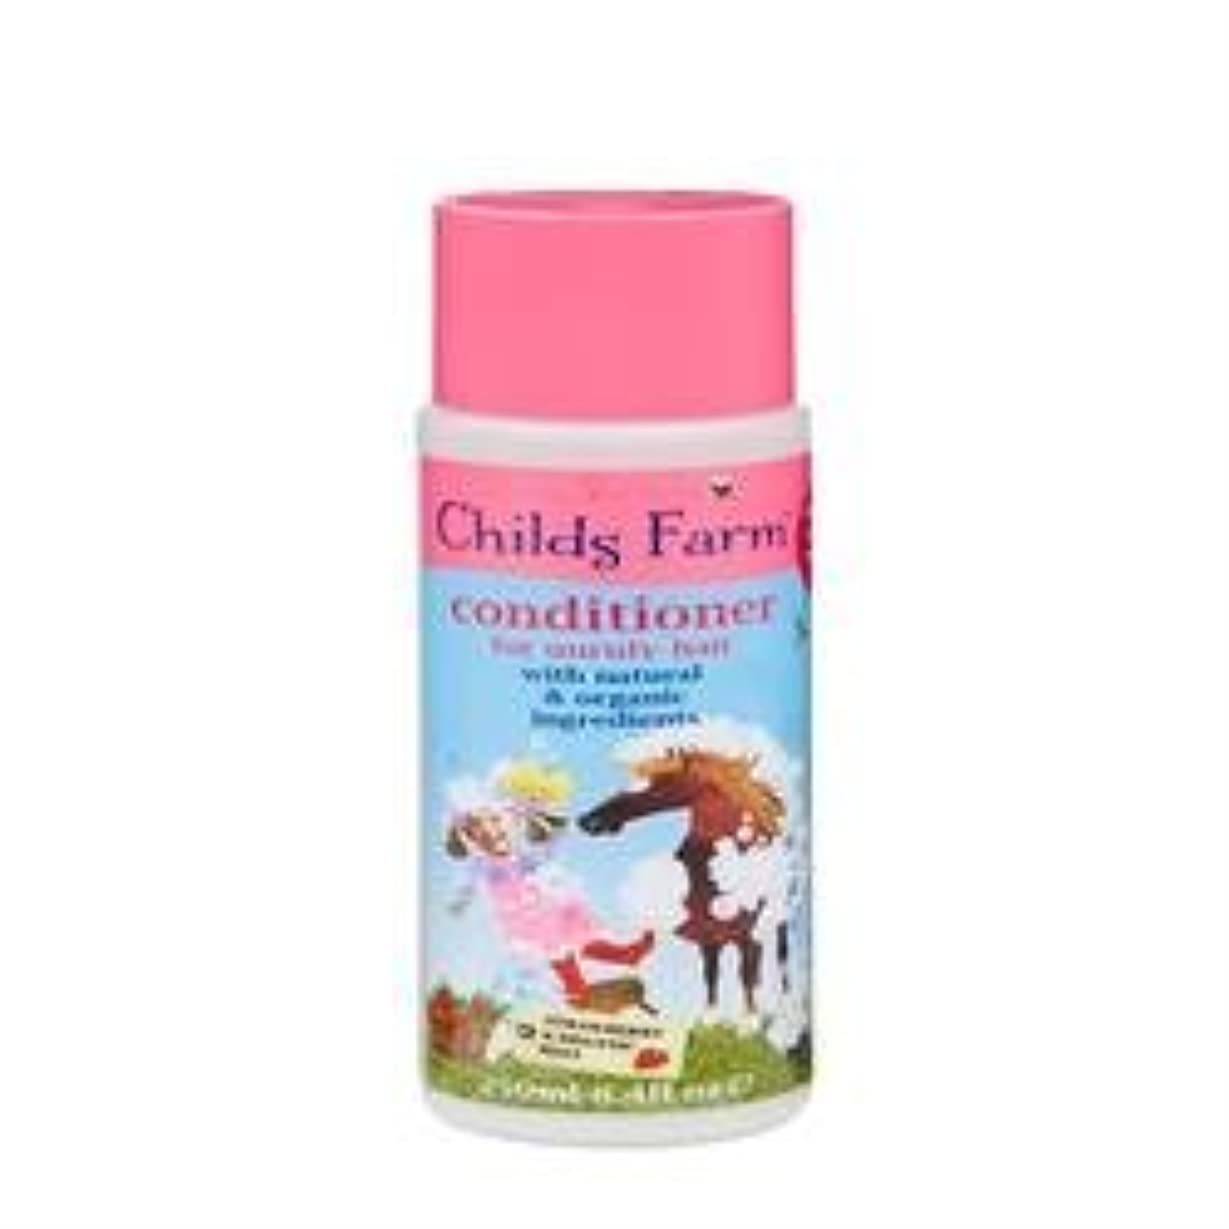 一般化するもっと石鹸Conditioner for Unruly Hair (250ml) x 6 Pack by Childs Farm [並行輸入品]